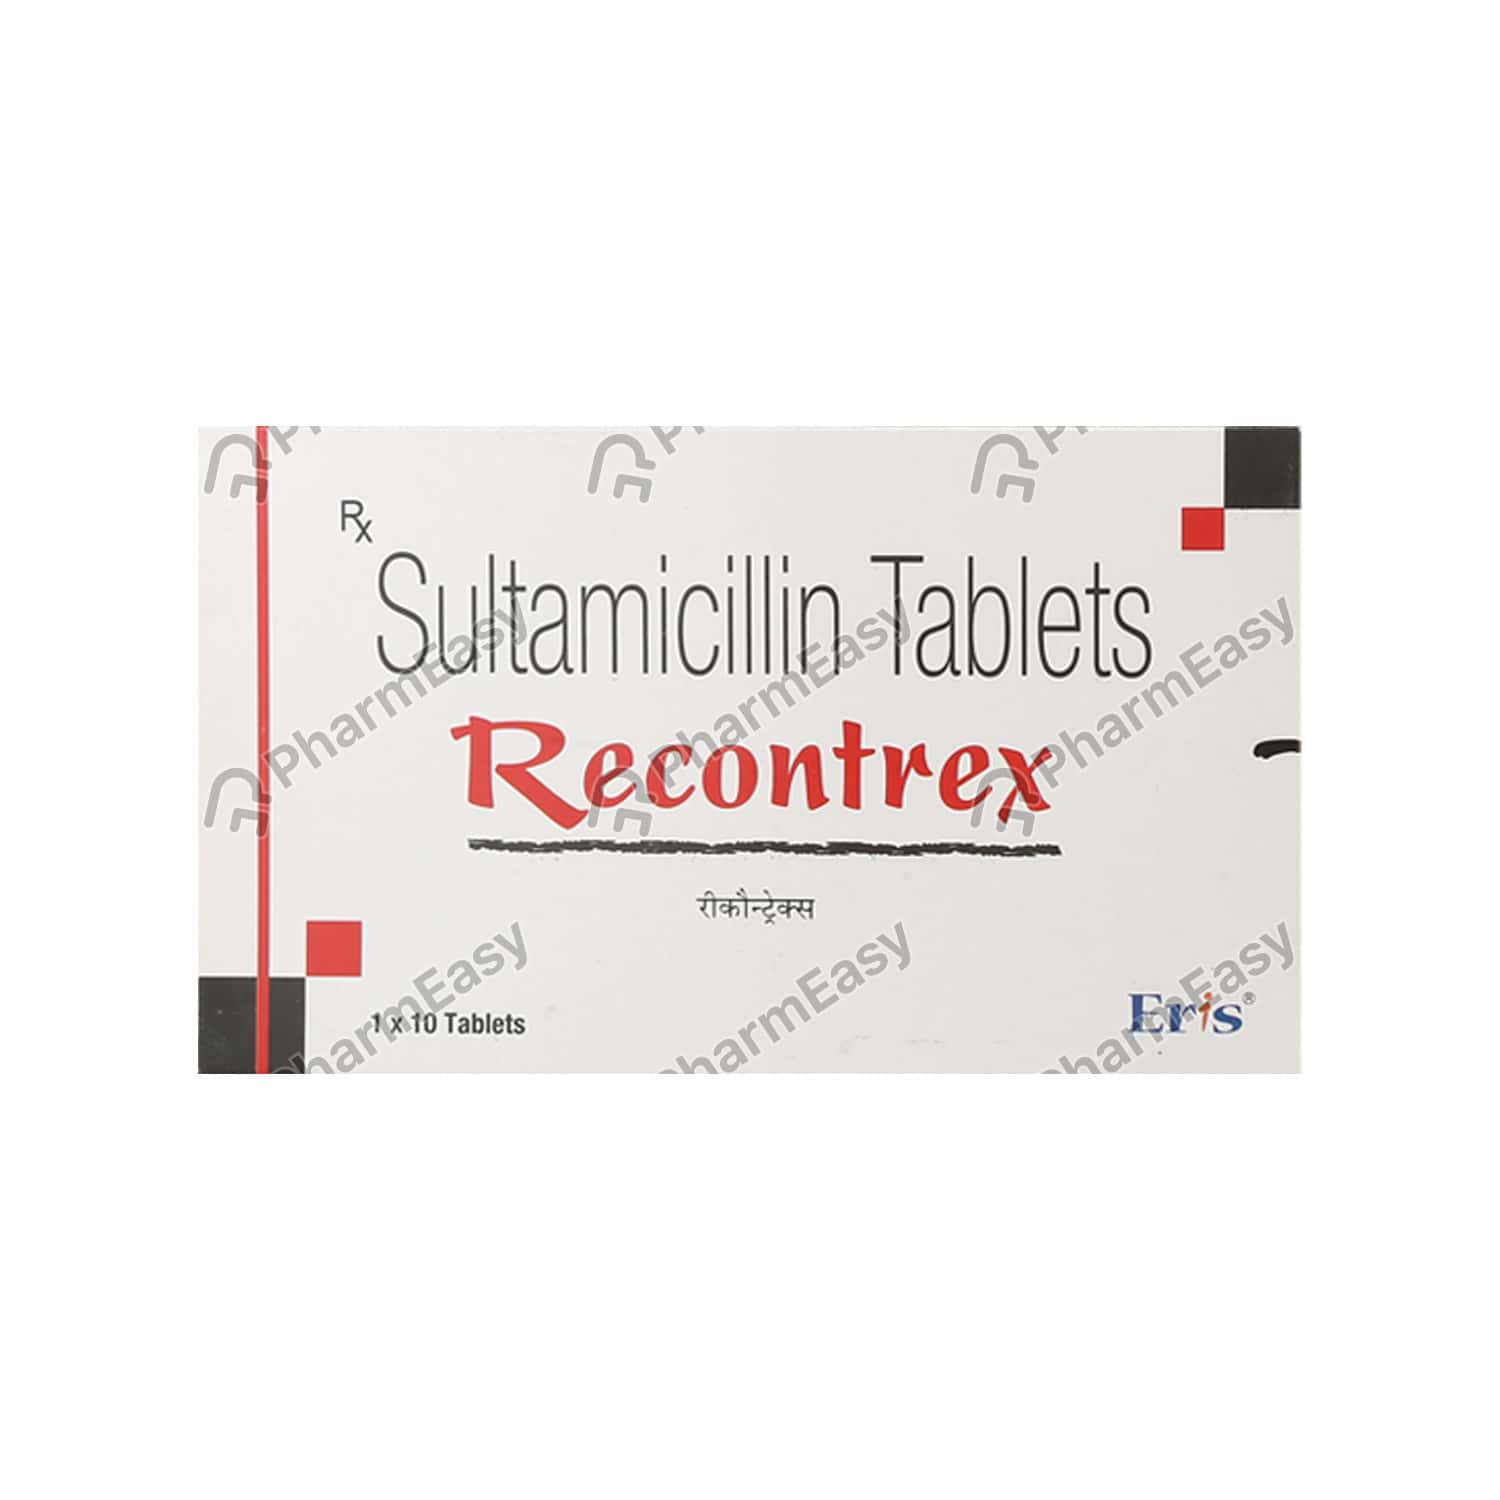 Recontrex 375mg Strip Of 10 Tablets